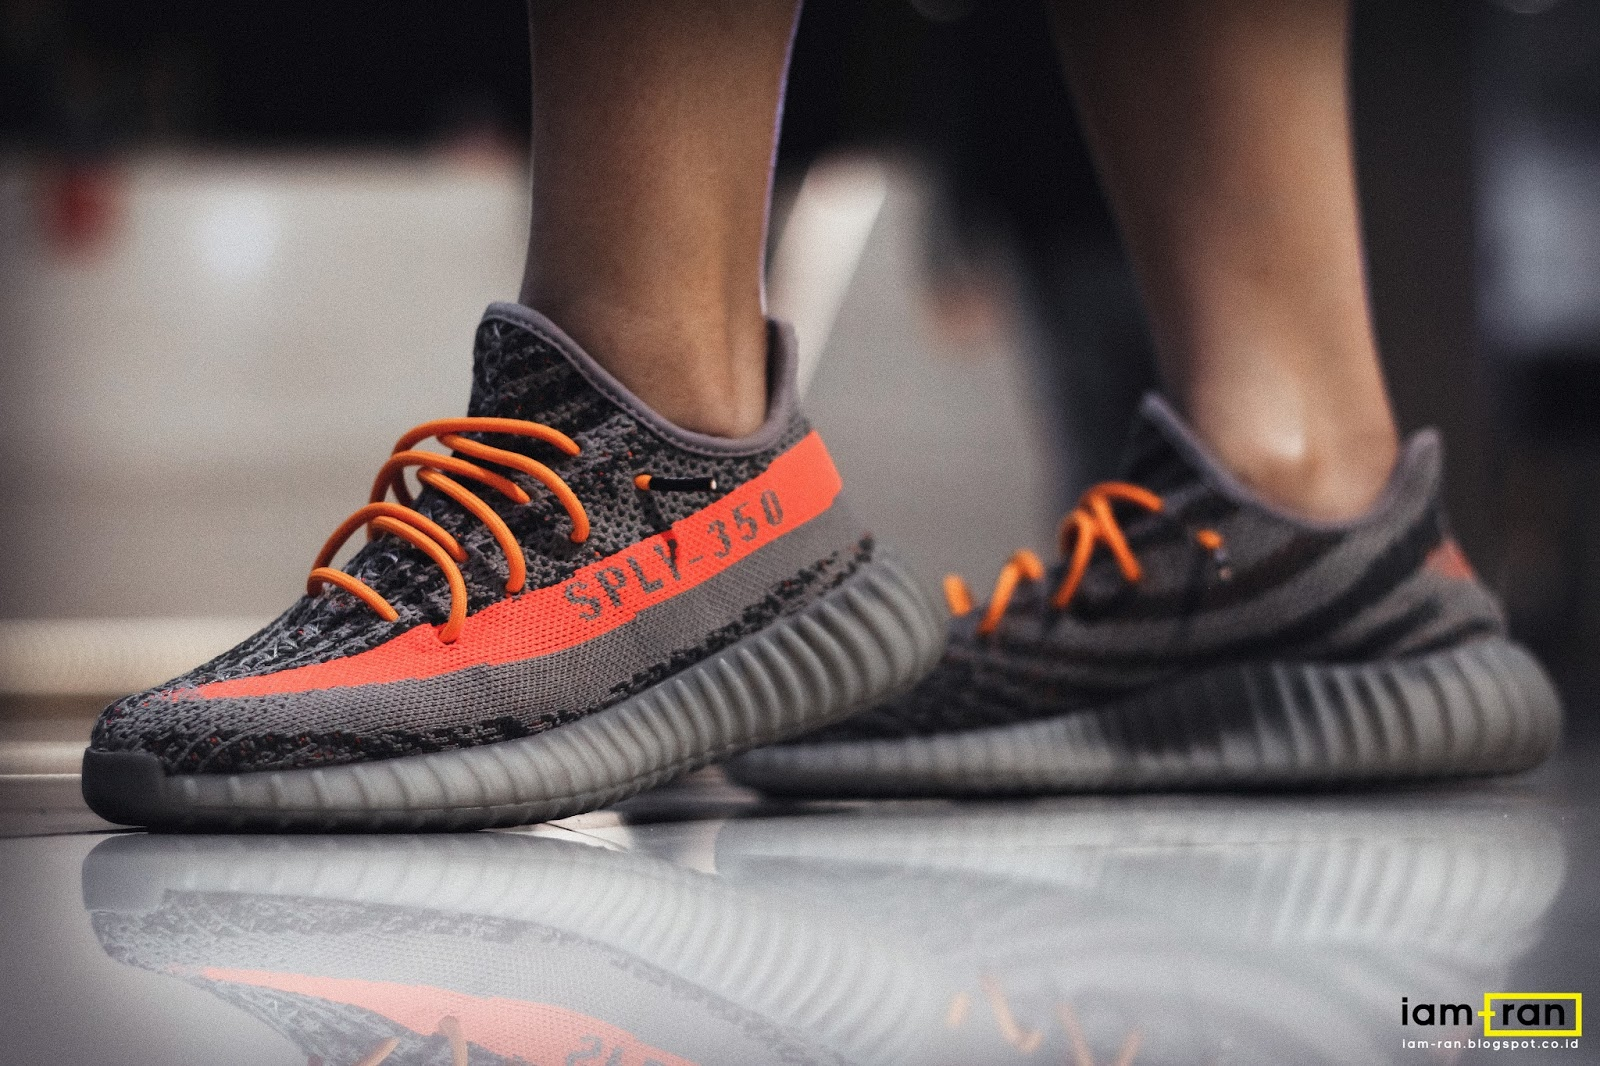 b5d71c4072d48 Agnes on feet. Sneakers   Adidas Yeezy boost 350 low v2